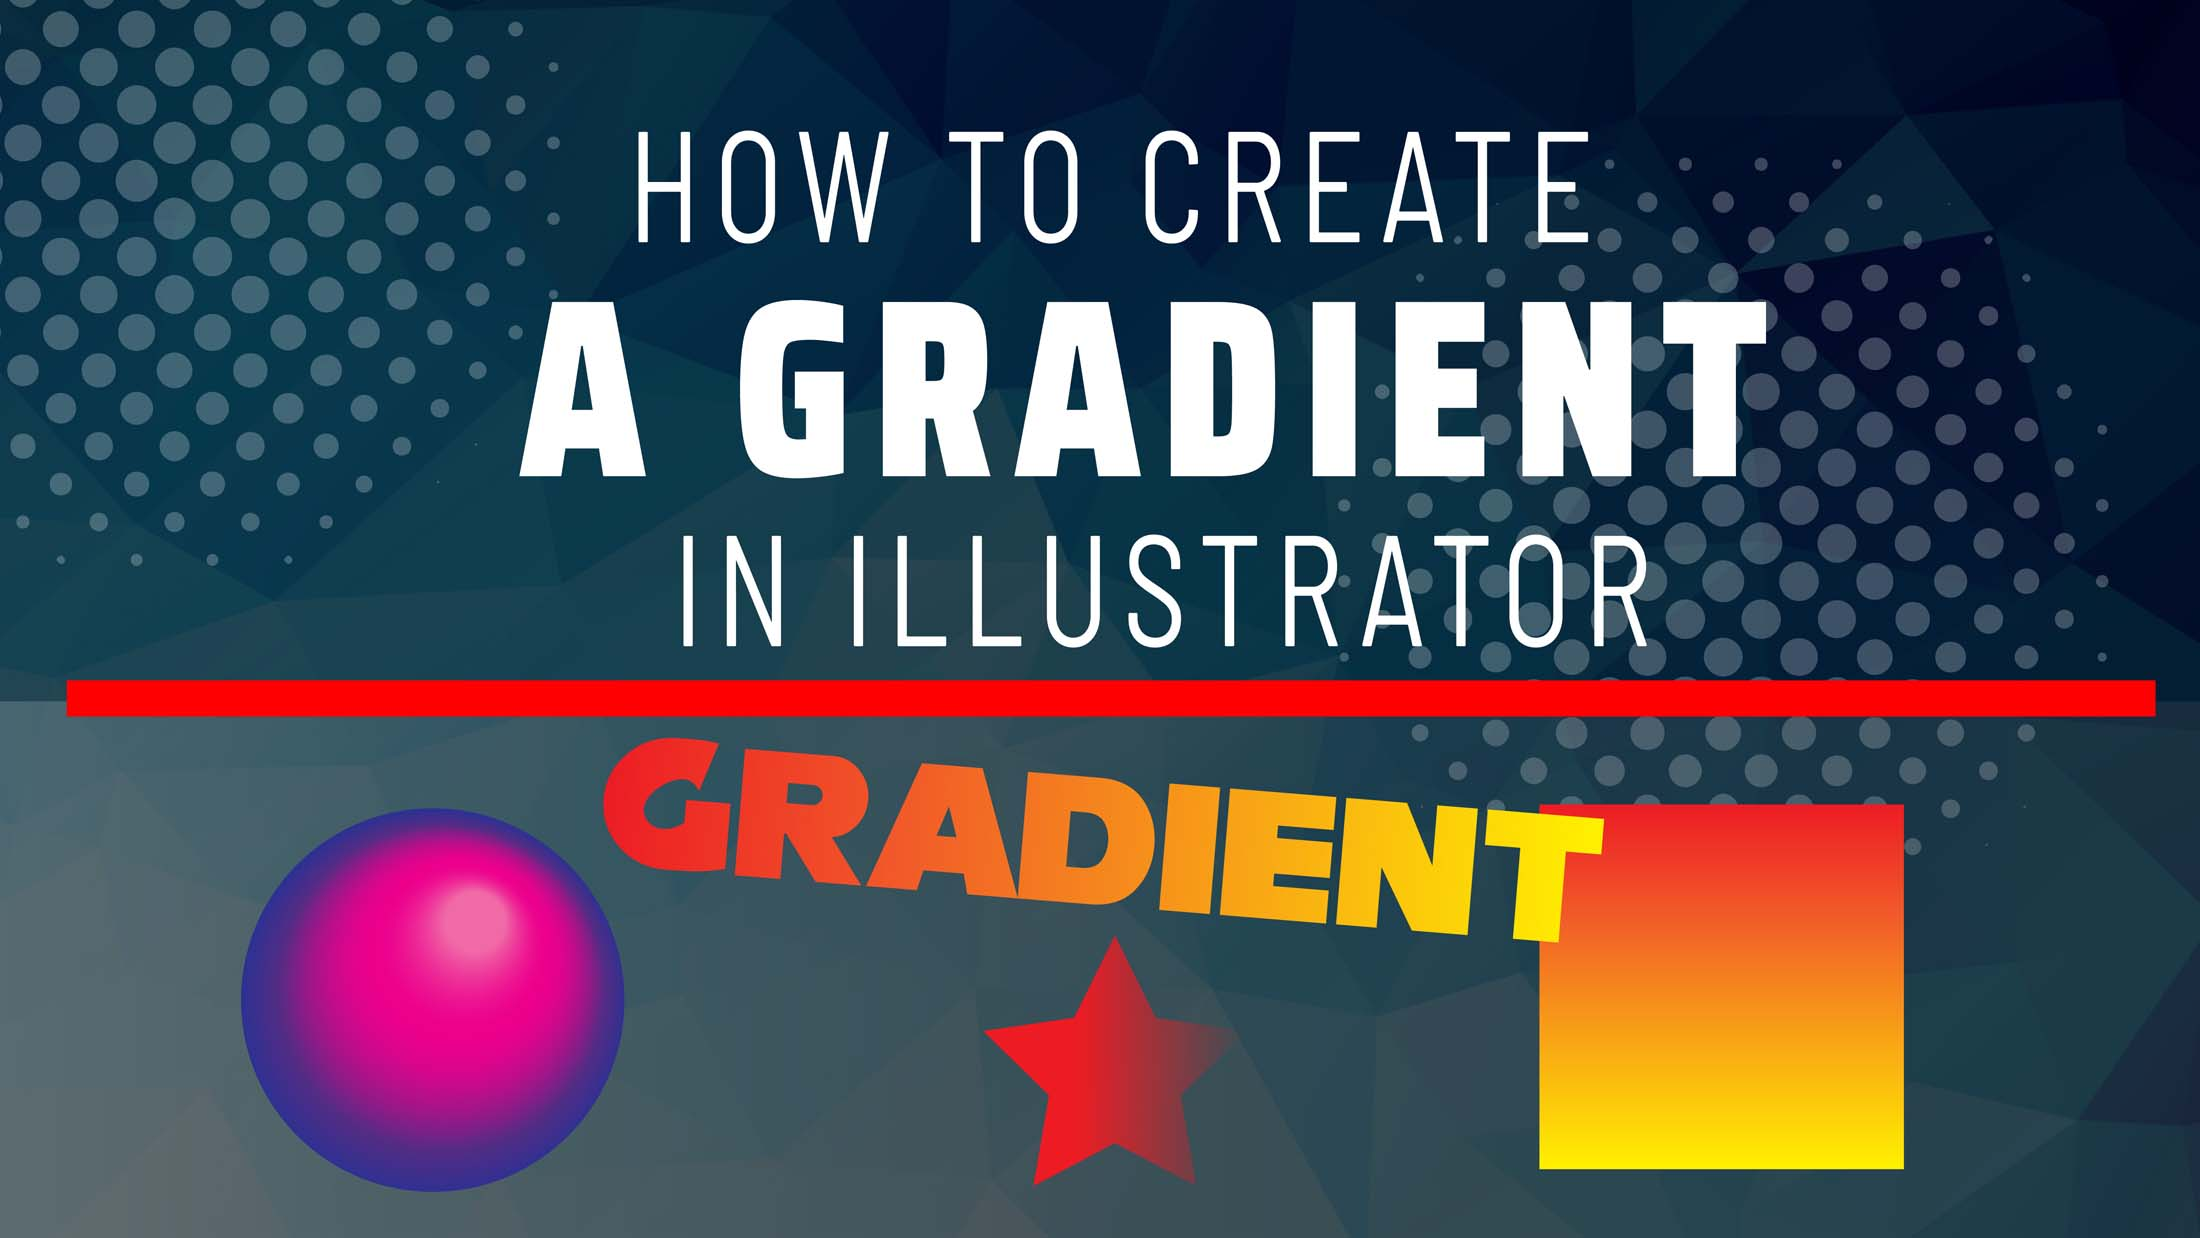 How to Create a Gradient in Illustrator